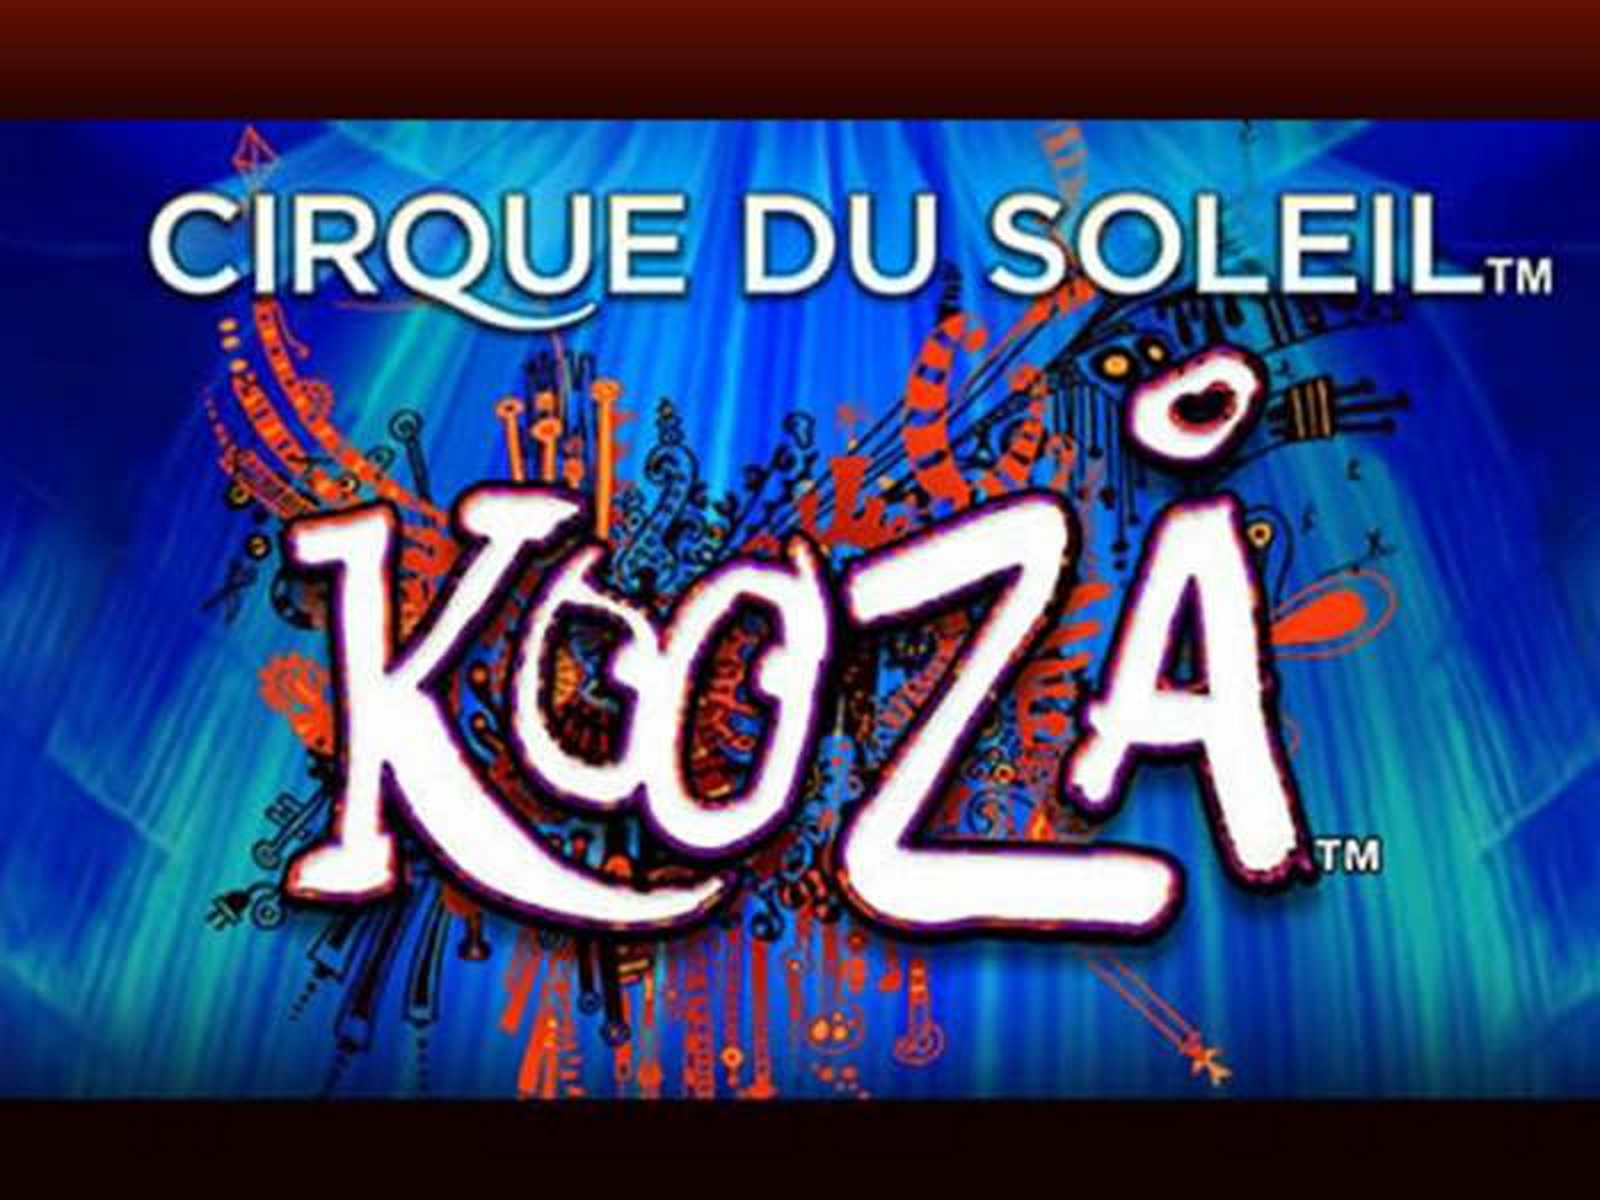 The Cirque Du Soleil Kooza Online Slot Demo Game by Bally Technologies